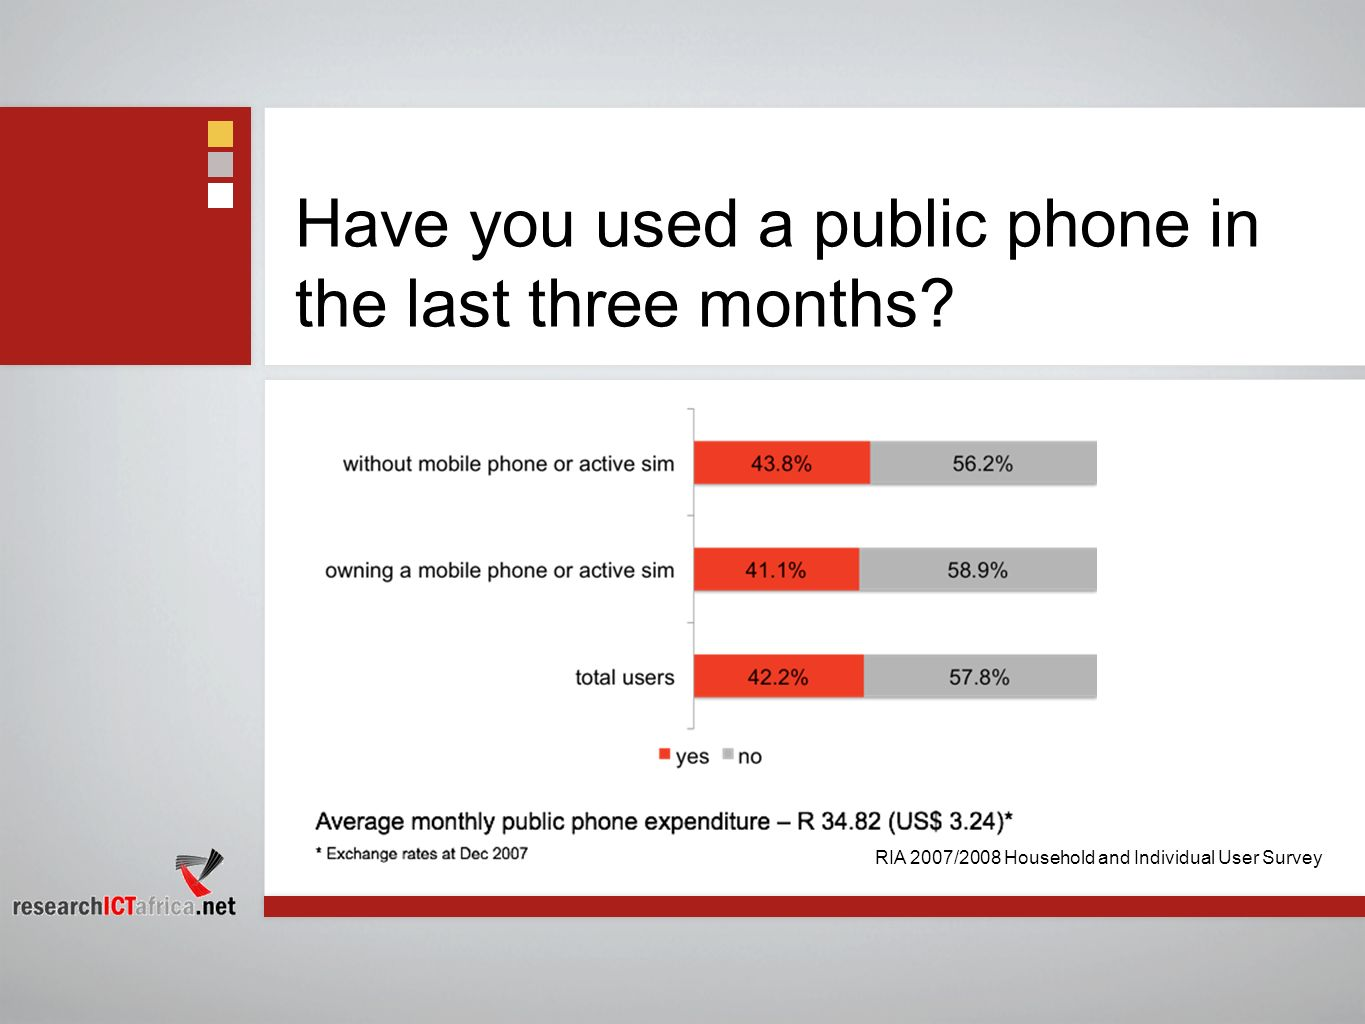 Have you used a public phone in the last three months